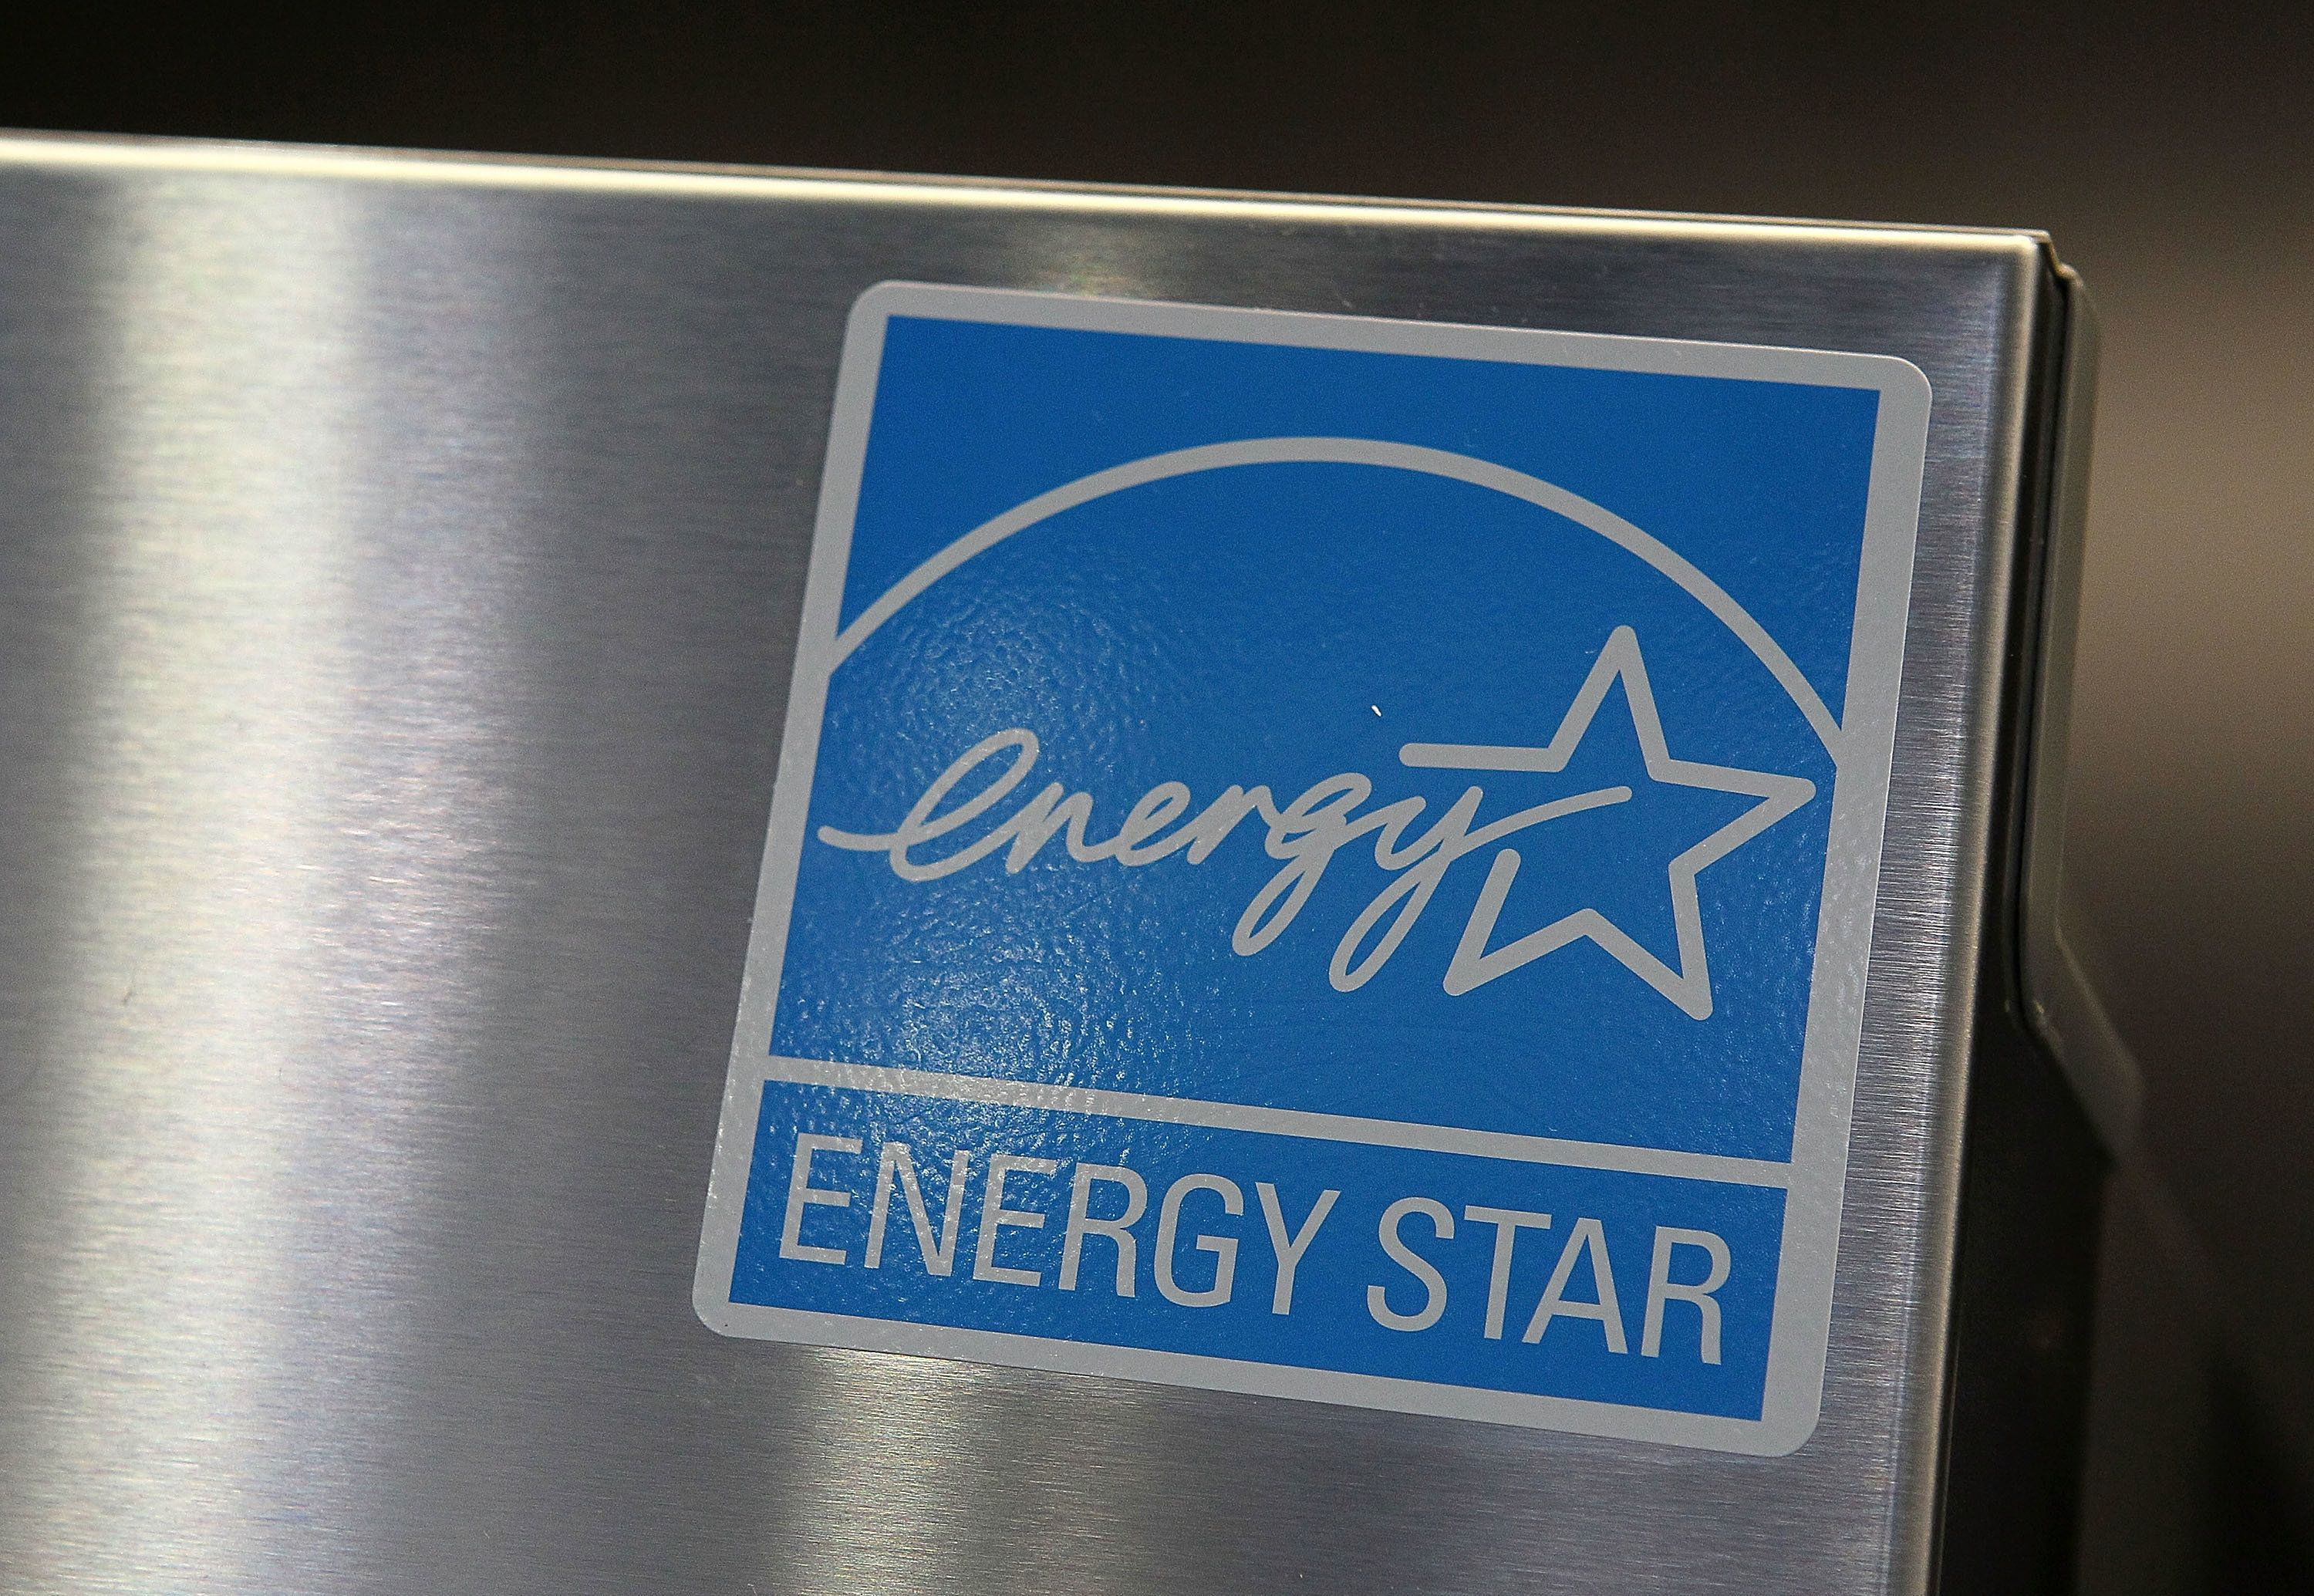 MARIN CITY, CA - MARCH 26:  An Energy Star label is displayed on a brand new refrigerator at a Best Buy store March 26, 2010 in Marin City, California. Government investigators from the General Accountability Office has concluded that the Environmental Protection Agency and the Energy Department run Energy Star program is susceptible to fraud and abuse. Investigators attempted to get Energy Star certification for 20 fake products, including a gasoline powered alarm clock, which was approved along with 14 other phony appliances. (Photo by Justin Sullivan/Getty Images)